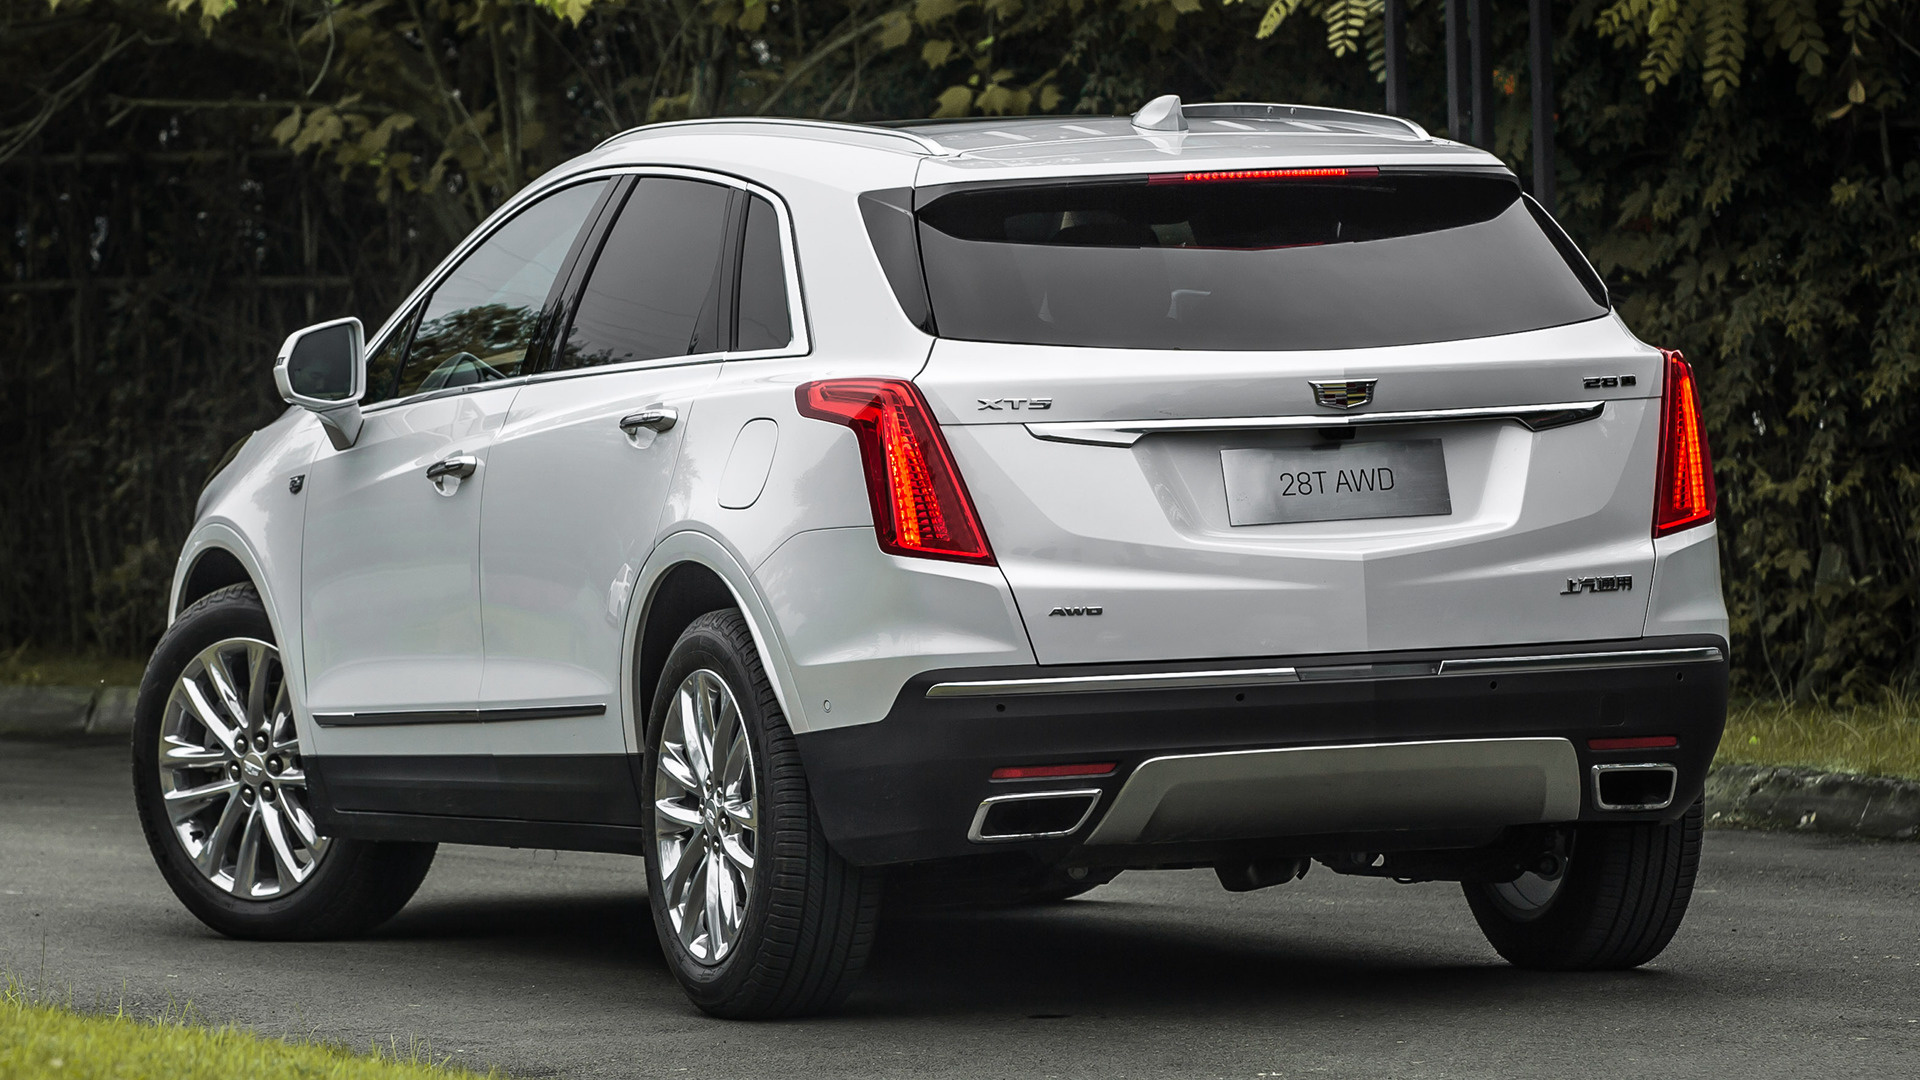 2017 Cadillac XT5 Platinum (CN) - Wallpapers and HD Images ...